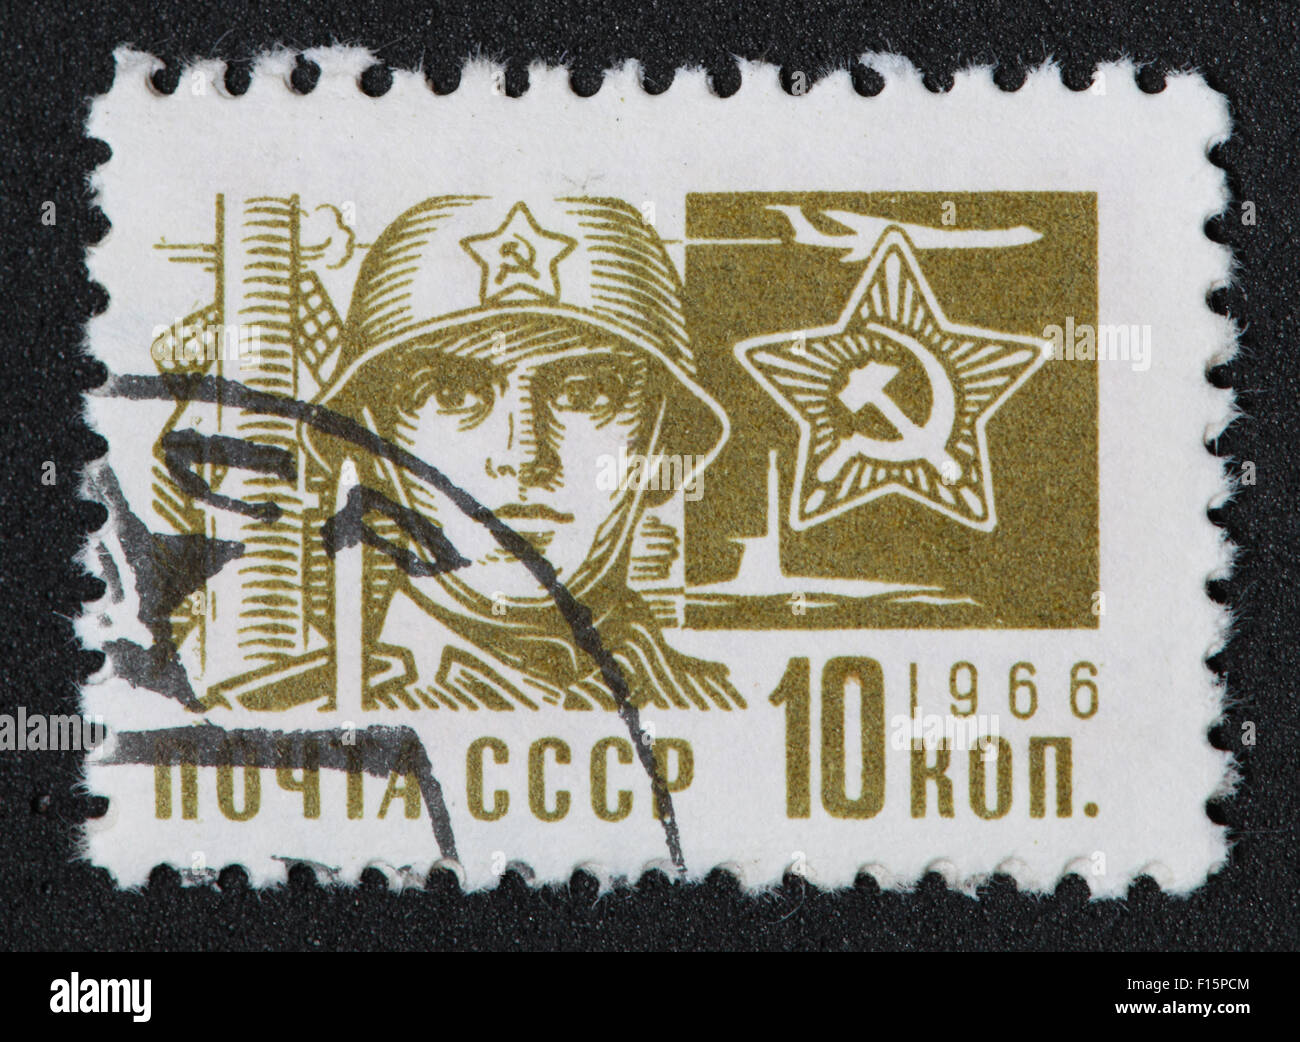 International Post,star,Used and Postmarked,Used,and,postmarked,perforated,stamp,Used,and,postmarked,Stamp,post,posting,mail,hobby,perforation,mark,postage,stamp,print,stamp,cancelled,stamp,payment,correspondence,postman,collection,collector,phila,USSR,Soviet,Bloc,Block,East,Eastern,Europe,Russia,hammer,sickle,USSR,Soviet,Gotonysmith,post,posting,mail,hobby,perforation,mark,postage,stamp,print,stamp,cancelled,canceled,stamp,payment,correspondence,postman,collection,collector,philately,philatelist,letter,price,history,retro,Australian,Vintage,delivery,date,relationship,communication,Oz,Australia,DownUnder,classic,rare,unique,Austrailian,financial,investment,invest,value,British,empire,nation,canceled,printed,on,black,background,close-up,closeup,close,up,sent,send,philately,mailing,shipping,postoffice,office,isolated,circa,special,colour,color,postmarked,marked,airmail,aged,antique,retro,cutting,historic,old,stamps,collection,stamp collection,album,Timbre,Sello,Stempel,Selo,Buy Pictures of,Buy Images Of,Down Under,Black background